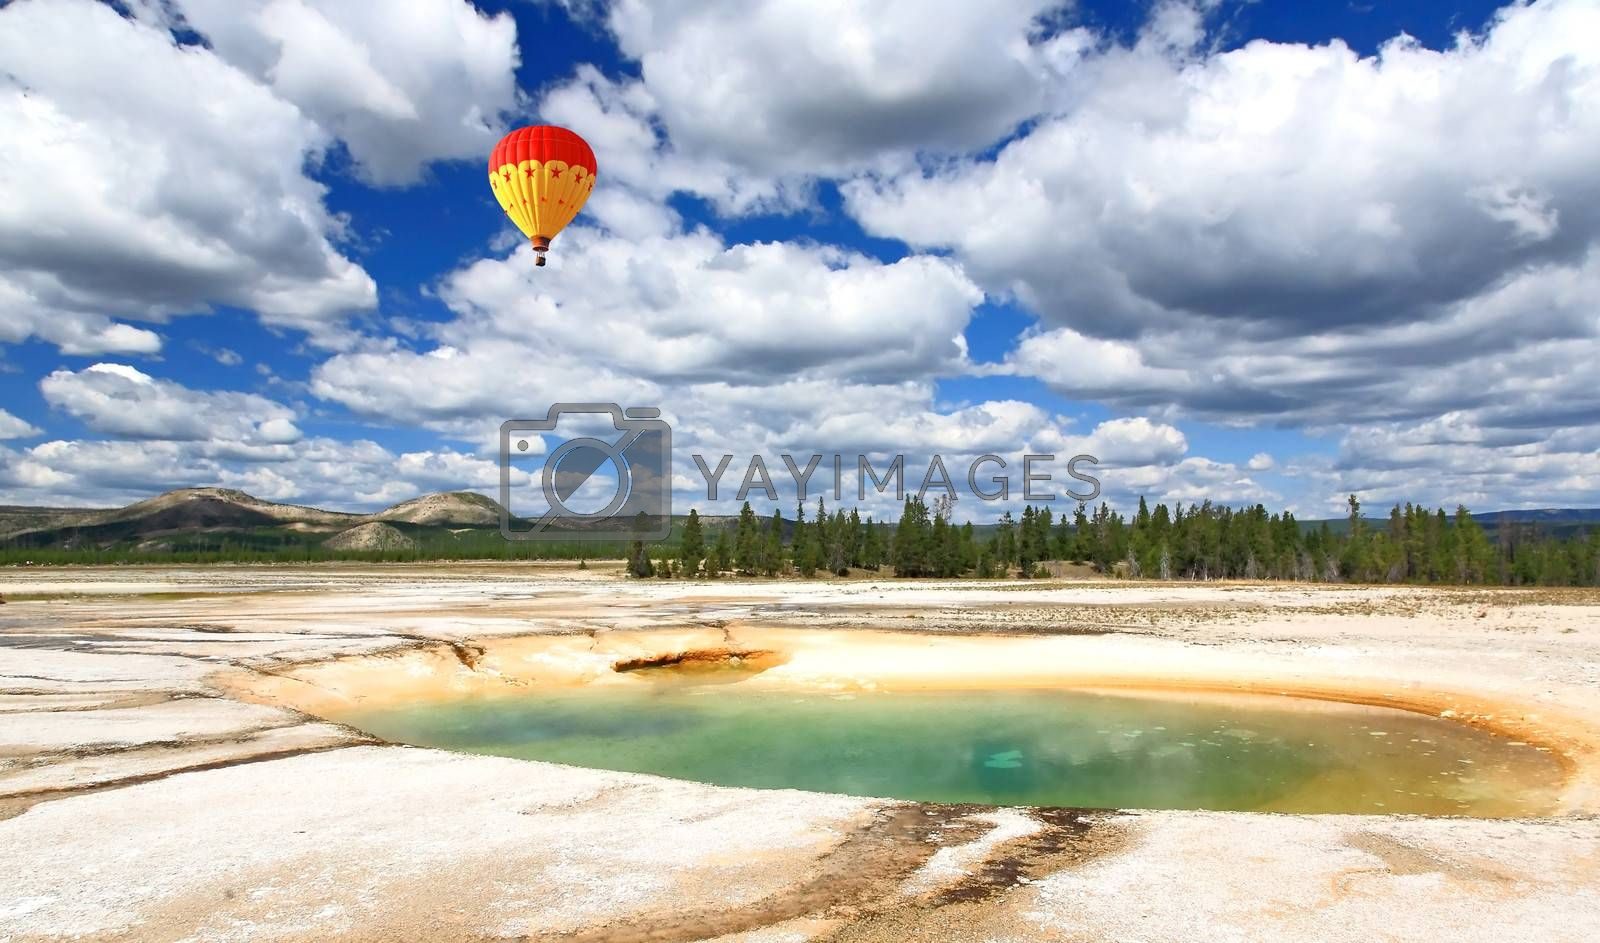 The scenery at Midway Geyser Basin in Yellowstone National Park